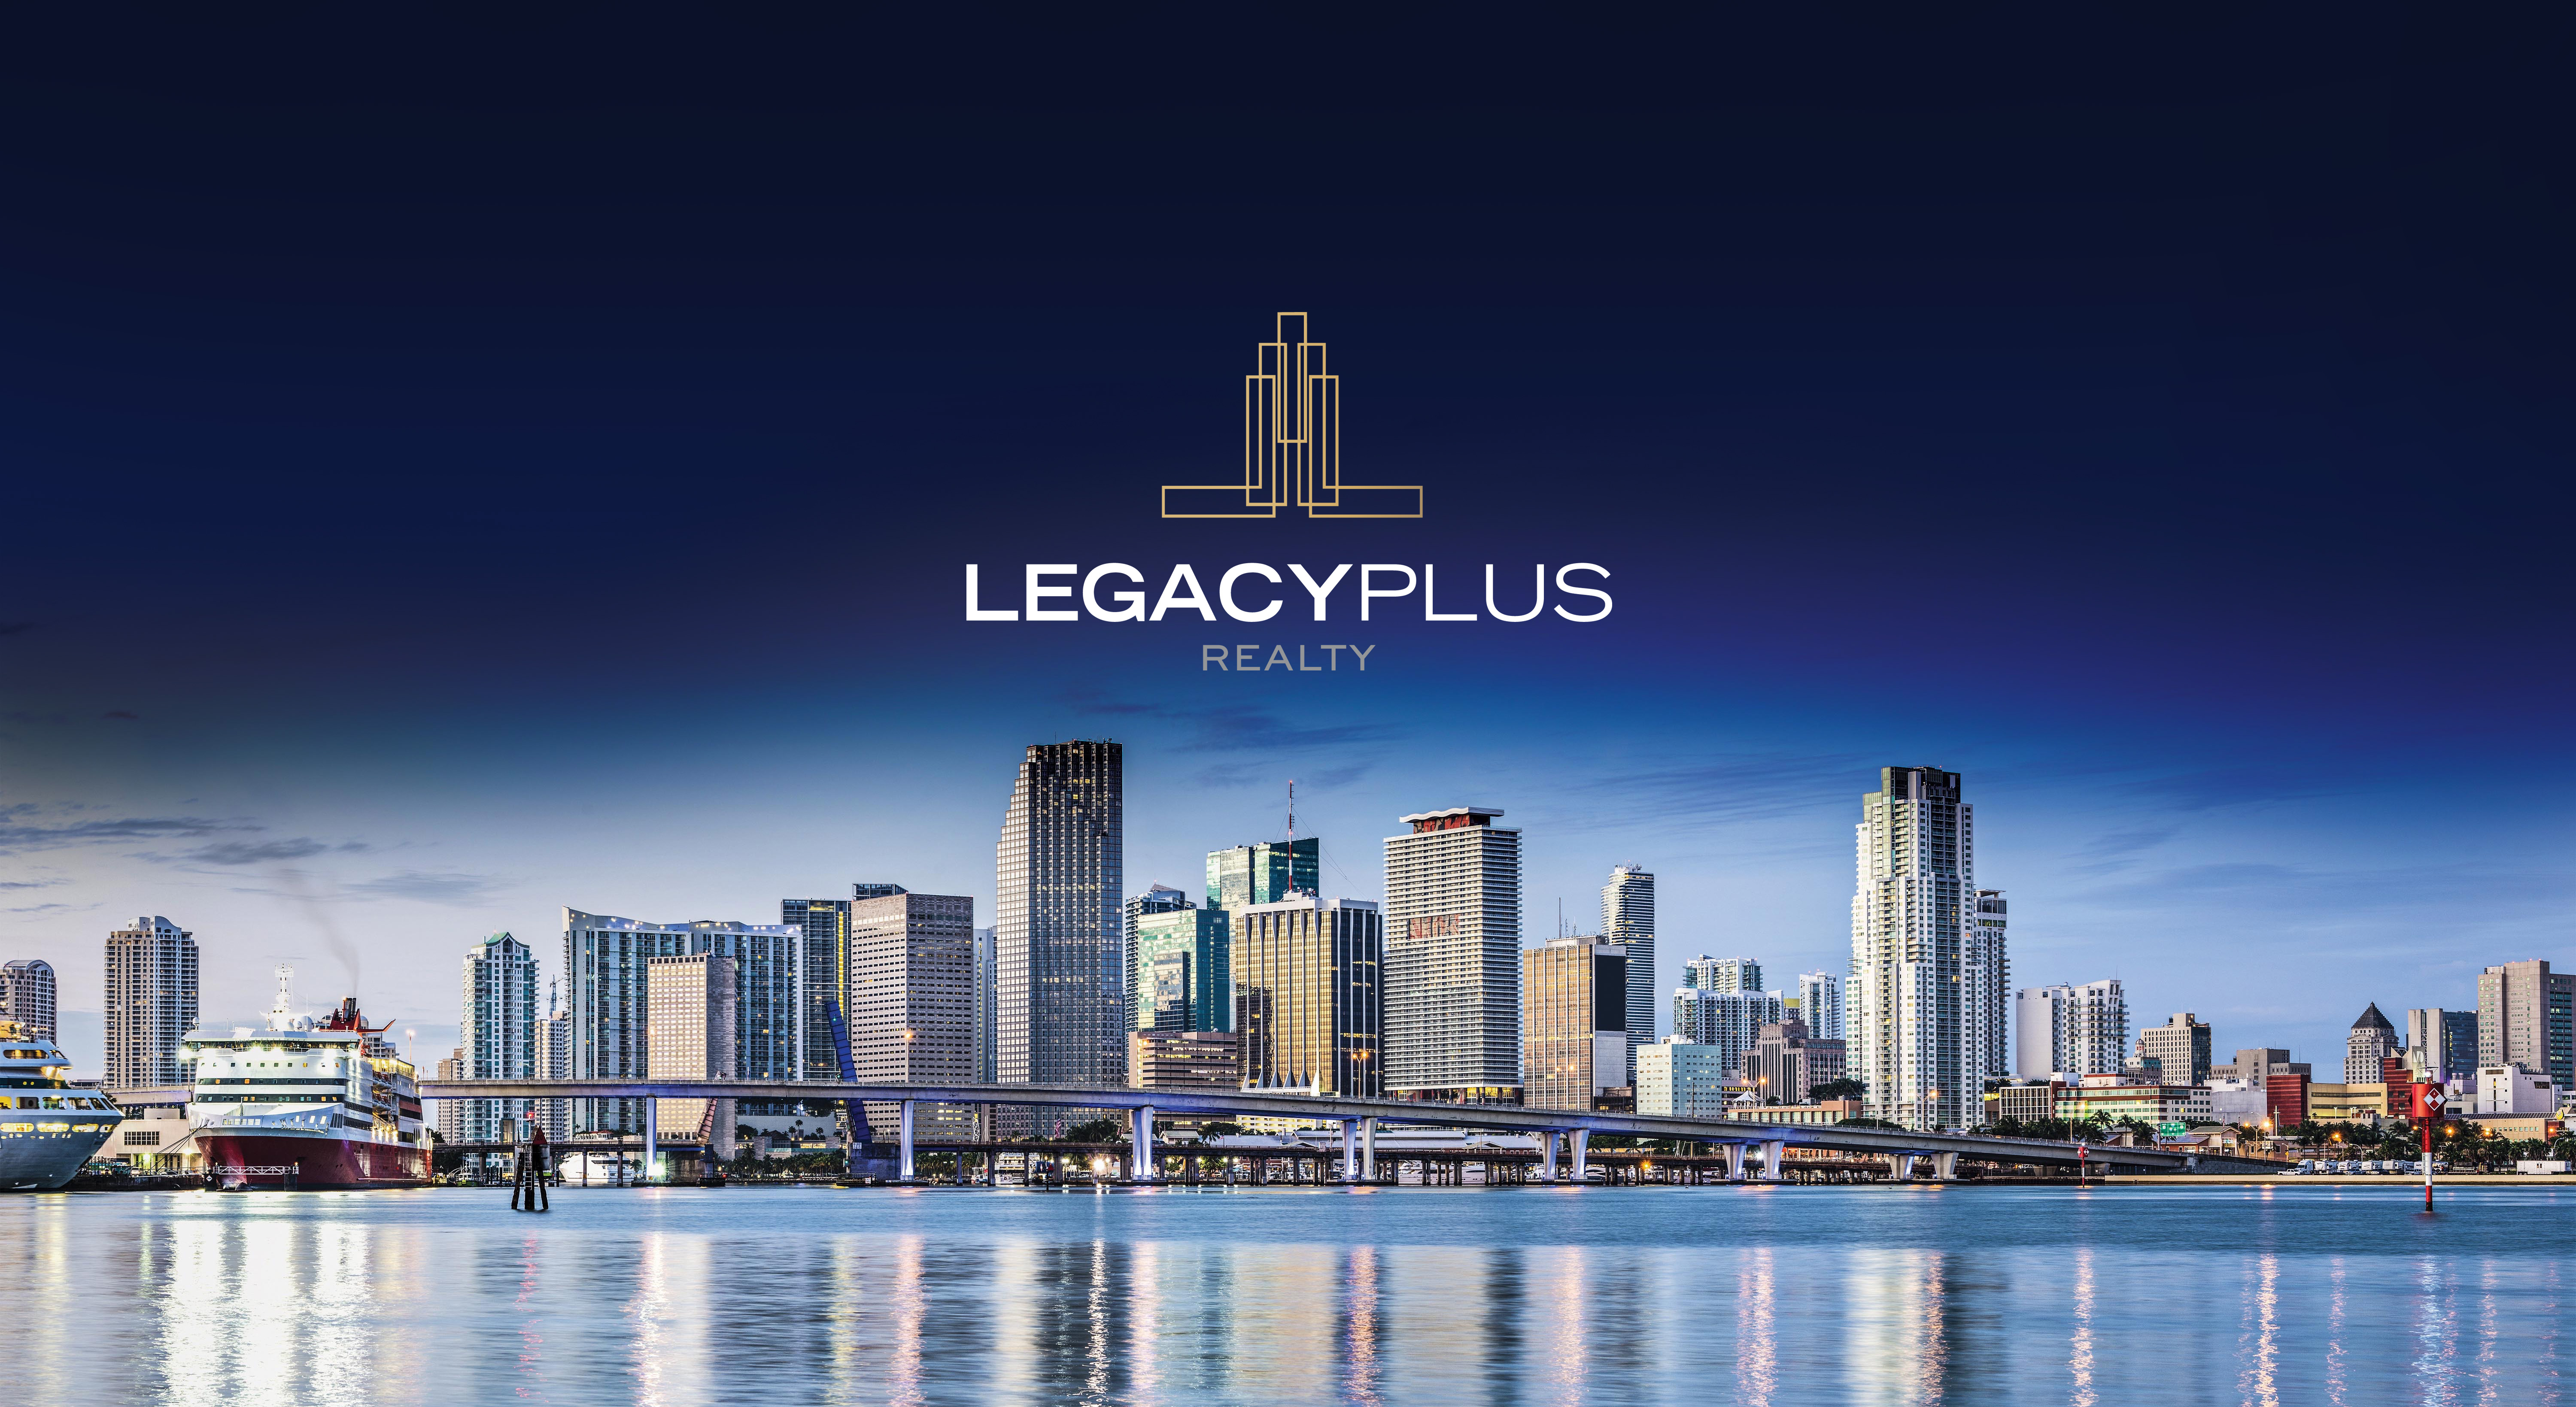 Legacy Plus Realty South Florida Homes And Condos For Sale